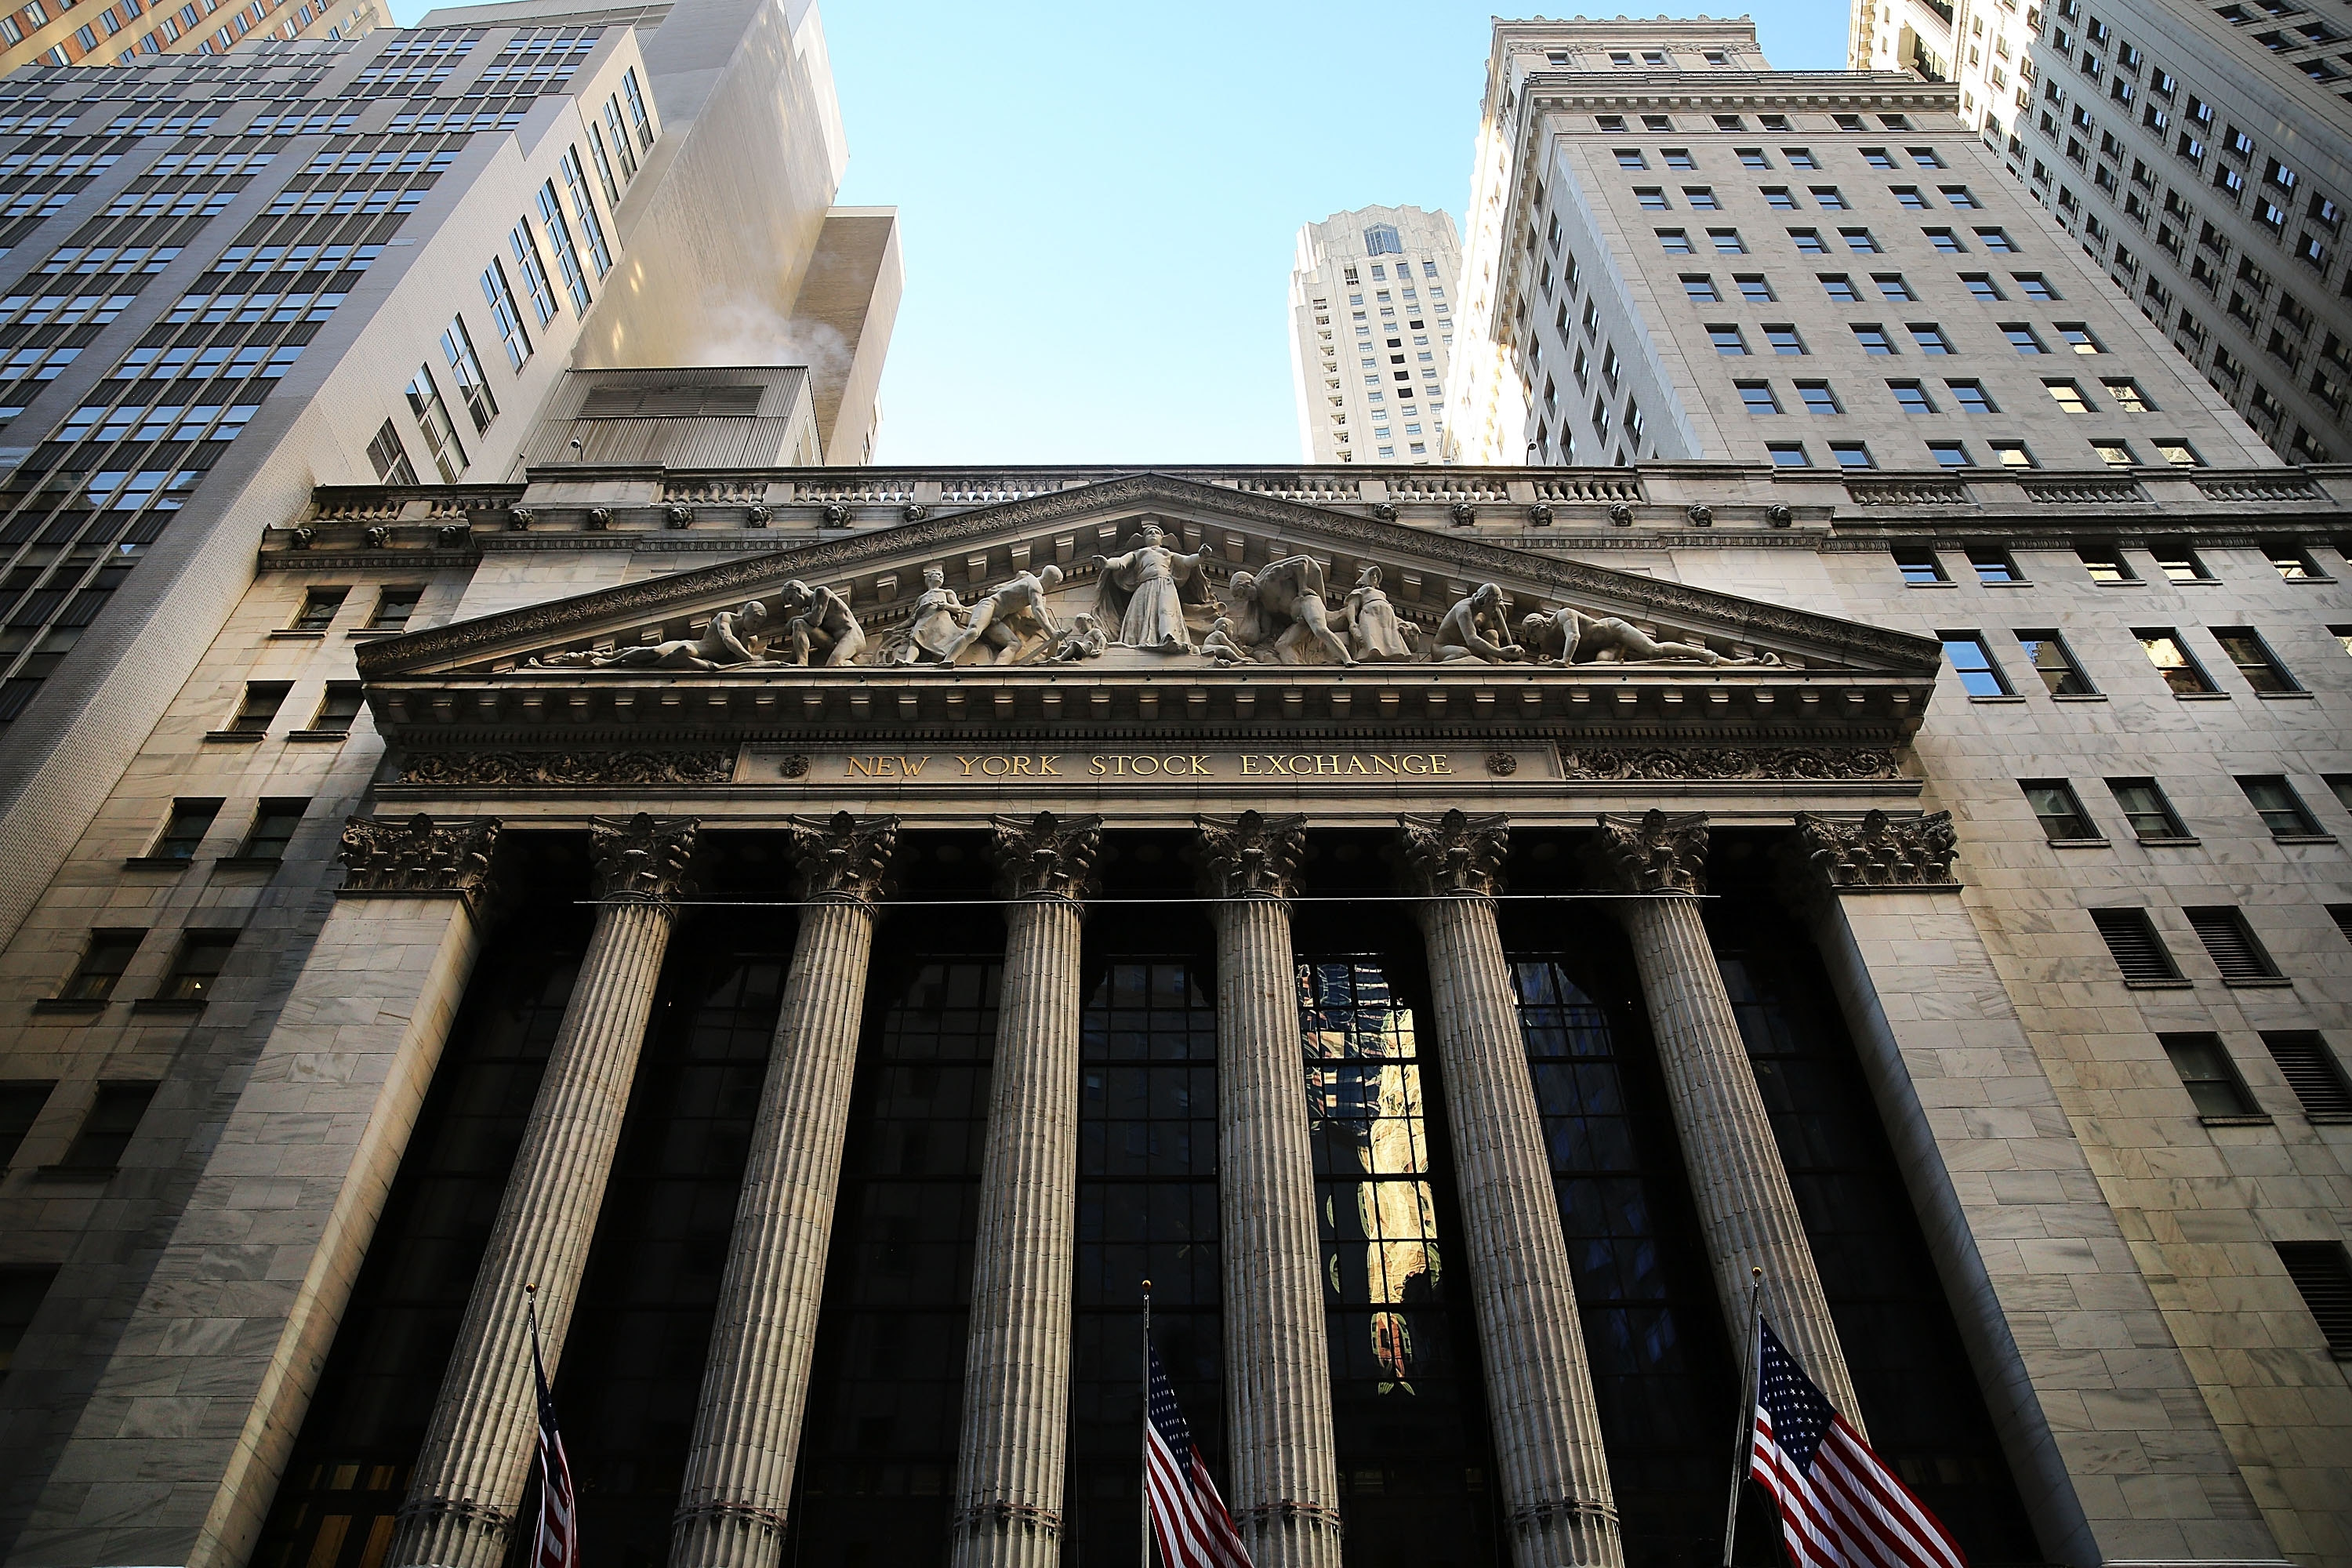 At New York Stock Exchange on Thursday, the Dow Jones industrial average rose 225.48 points, or 1.3 percent, to 17,416.85, after having fallen 2.8 percent in the previous two days. The S&P 500 climbed by 1 percent, to 2,021.25, reversing a drop of 0.7 percent. That index is down by 1.8 percent for January.